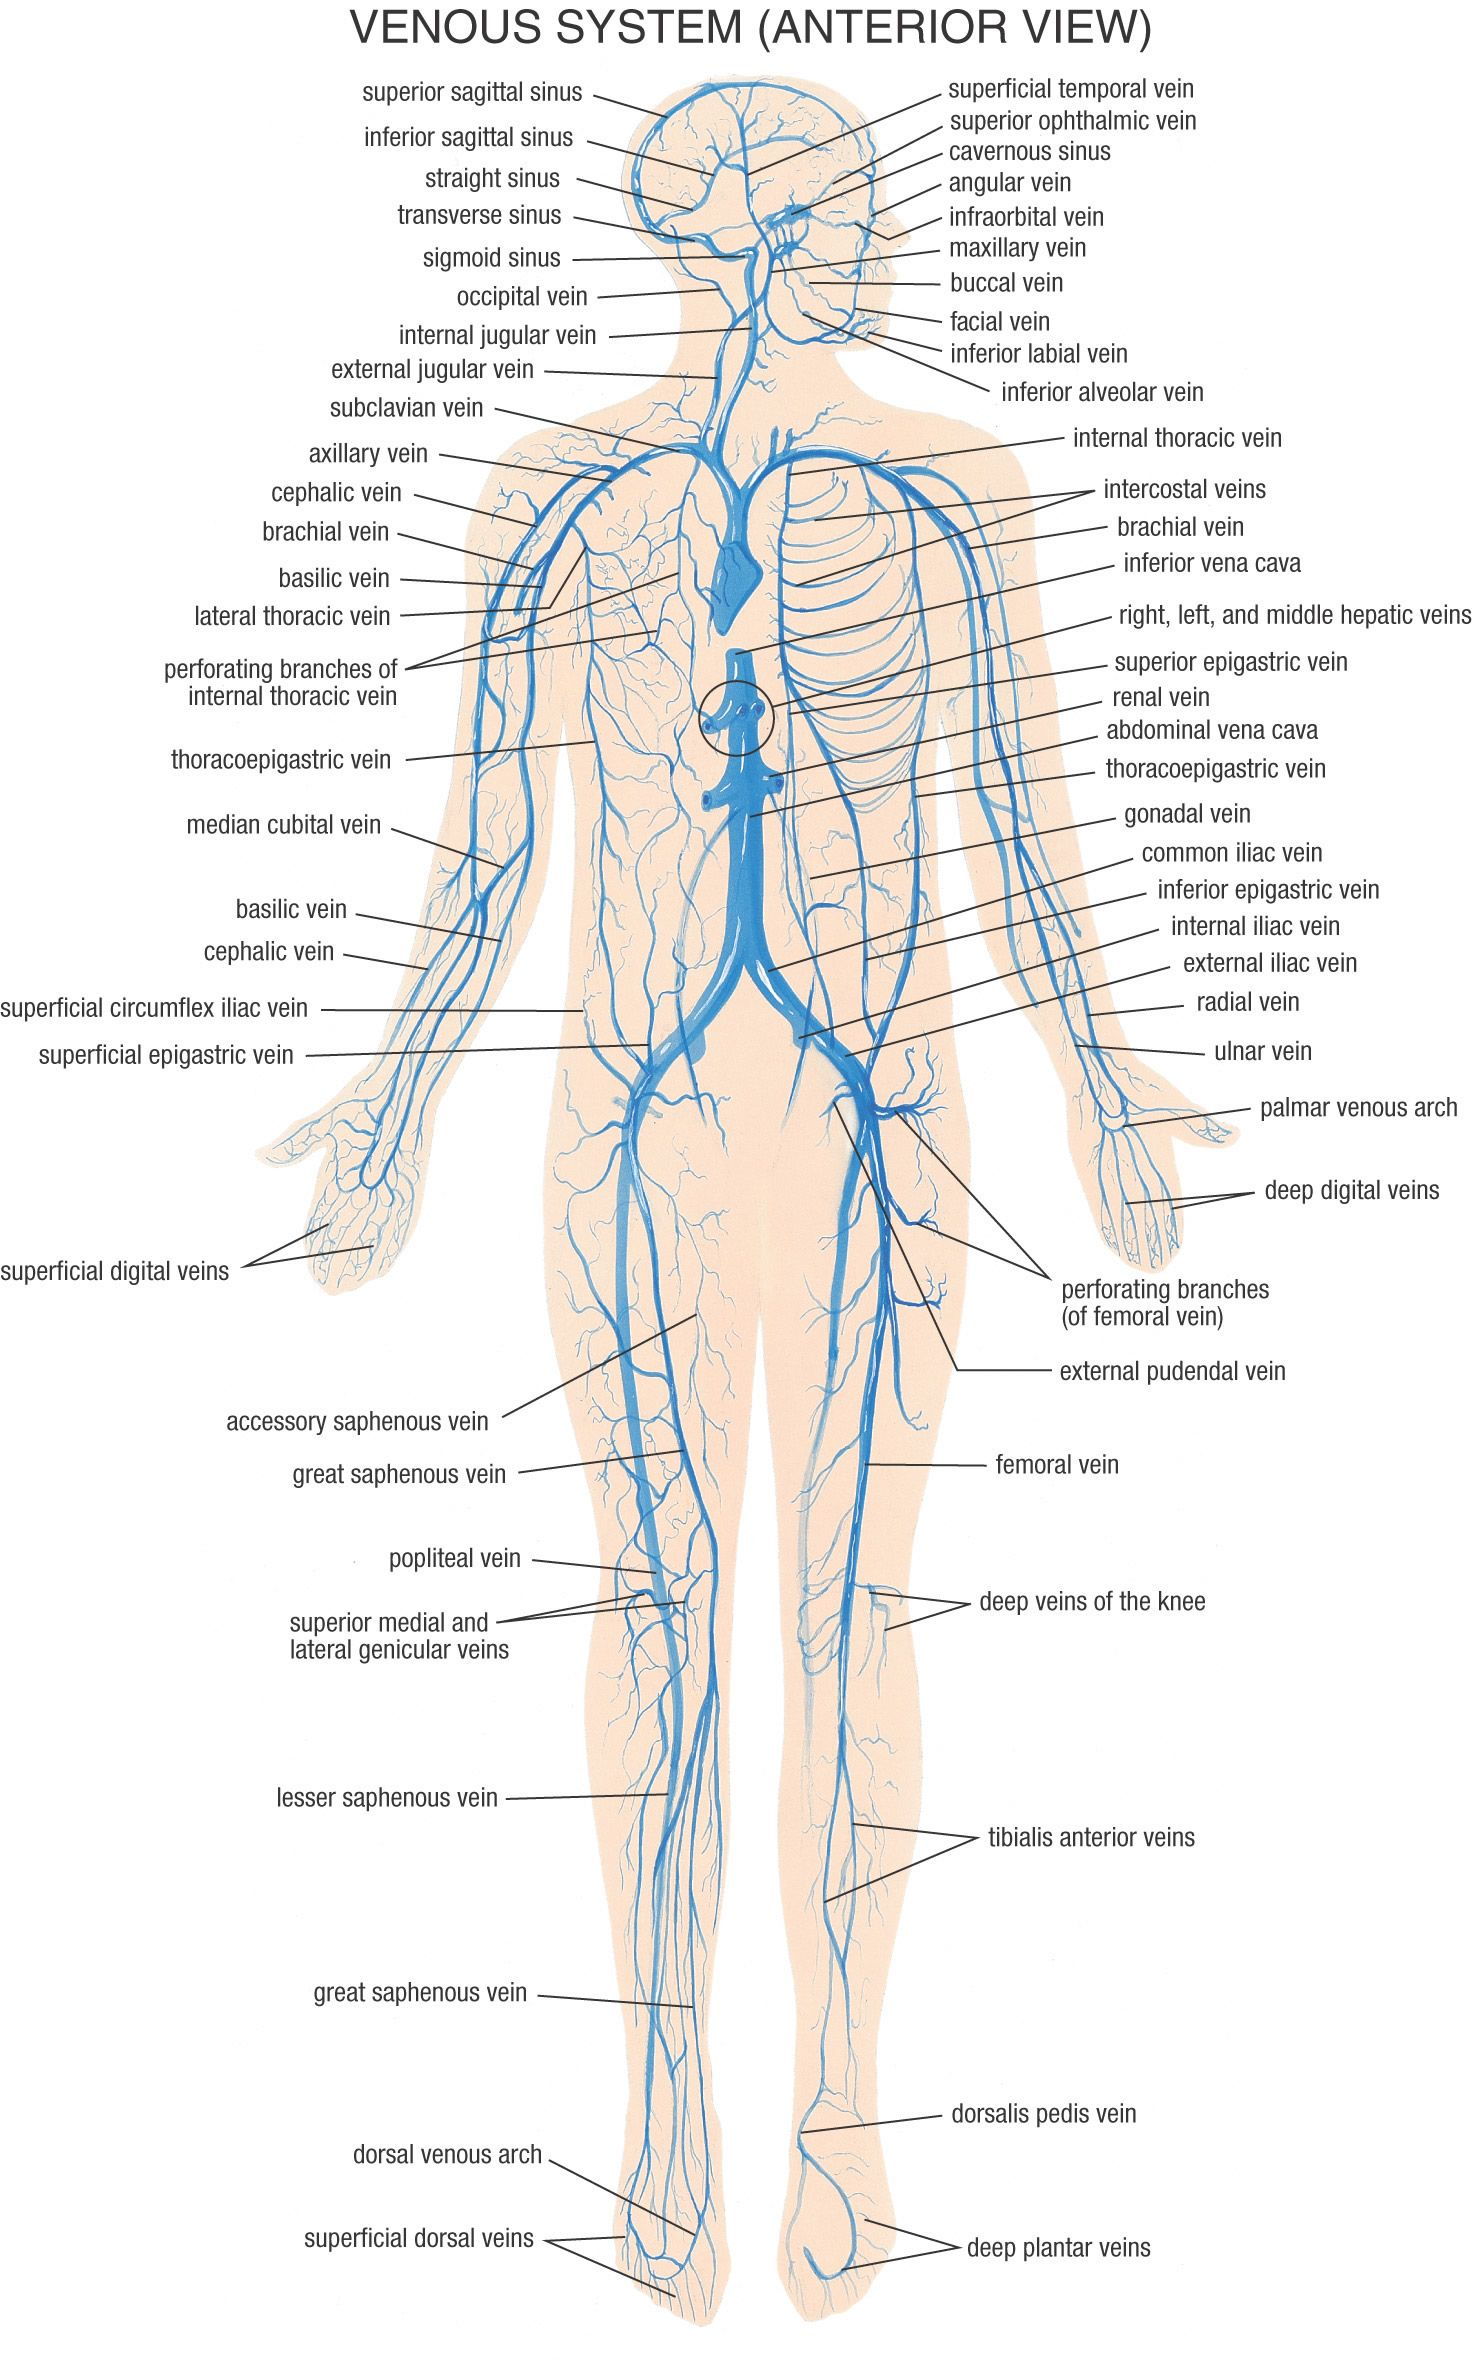 Venous System - Anterior View ~ Anatomy | Medicine | Pinterest | Om ...